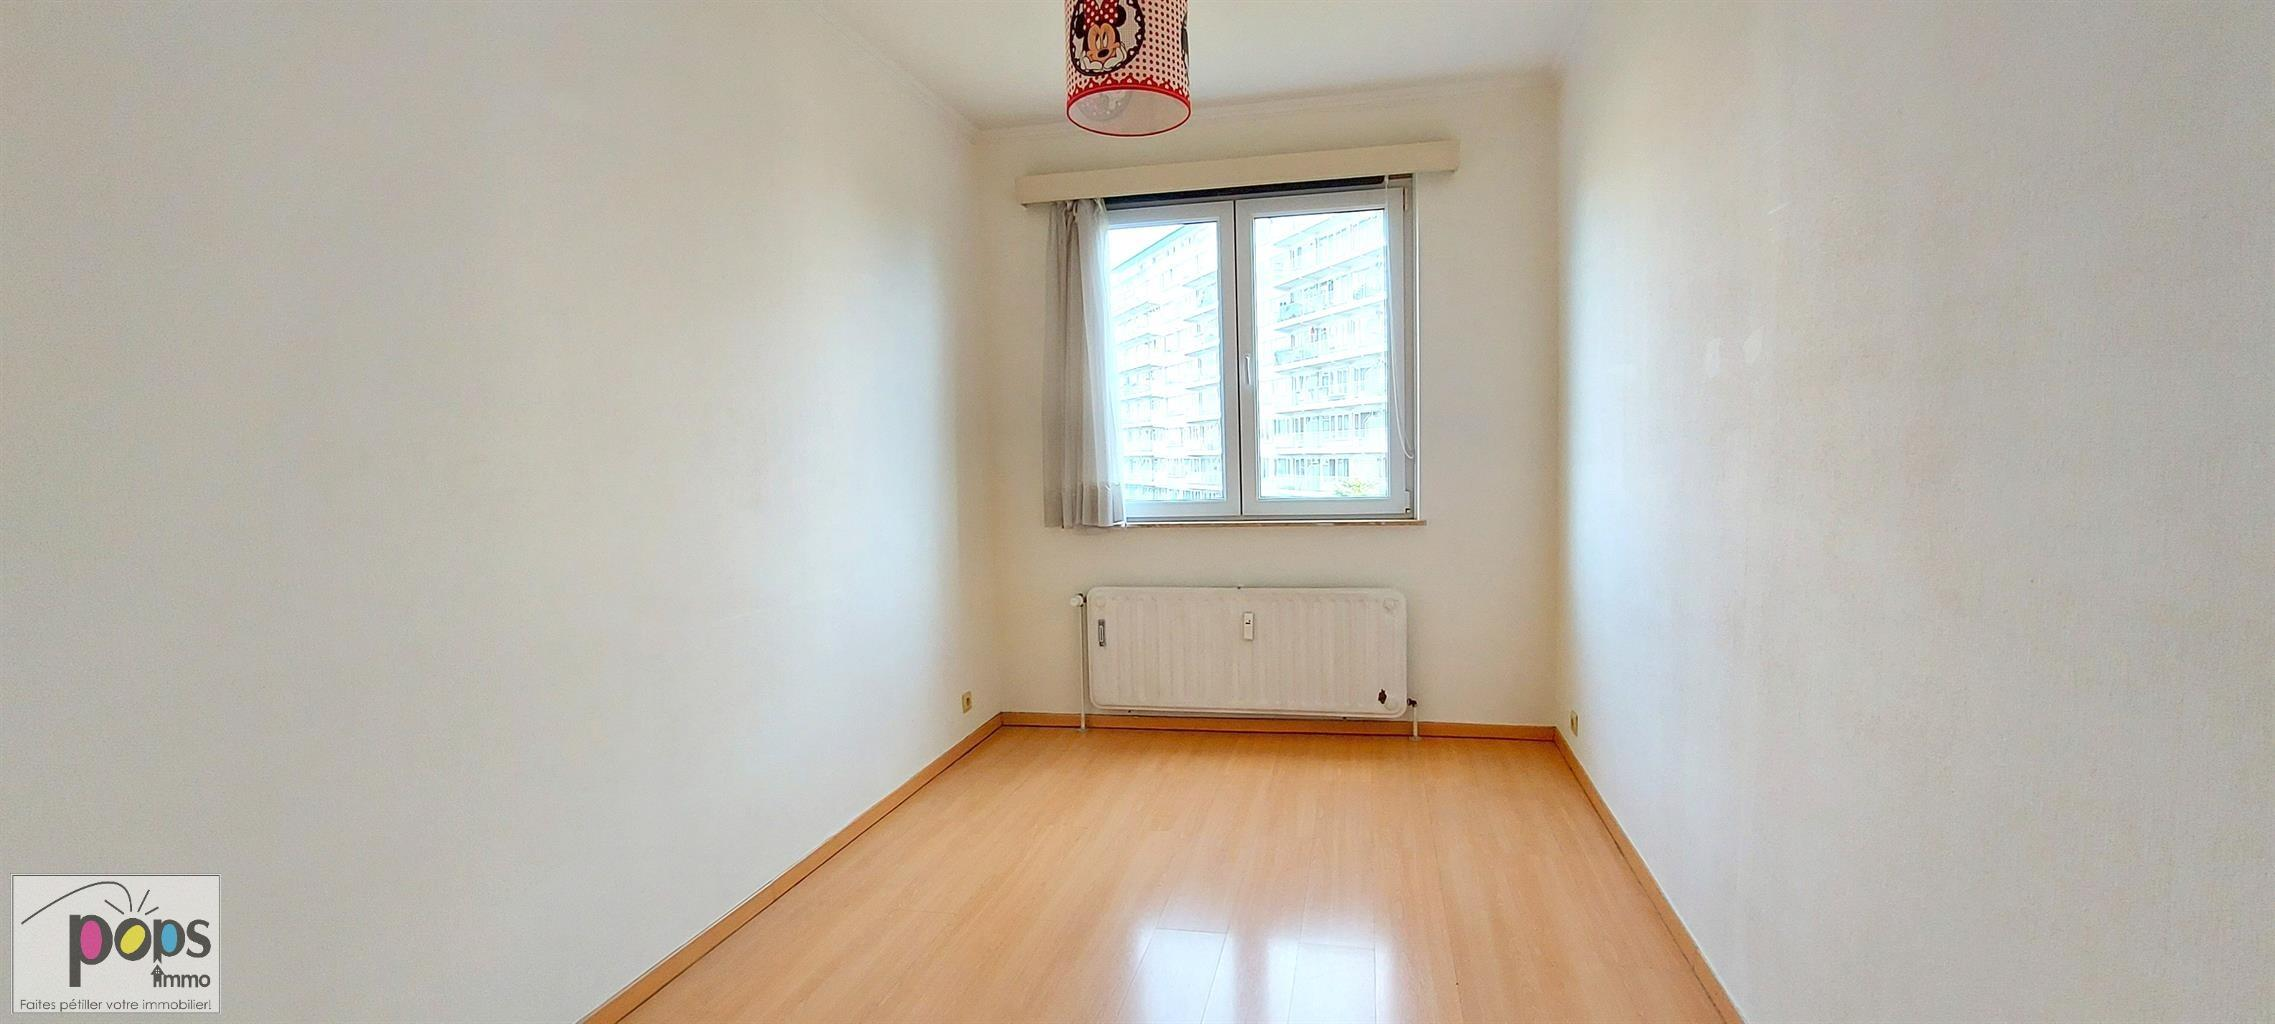 Appartement - Uccle - #4311863-18